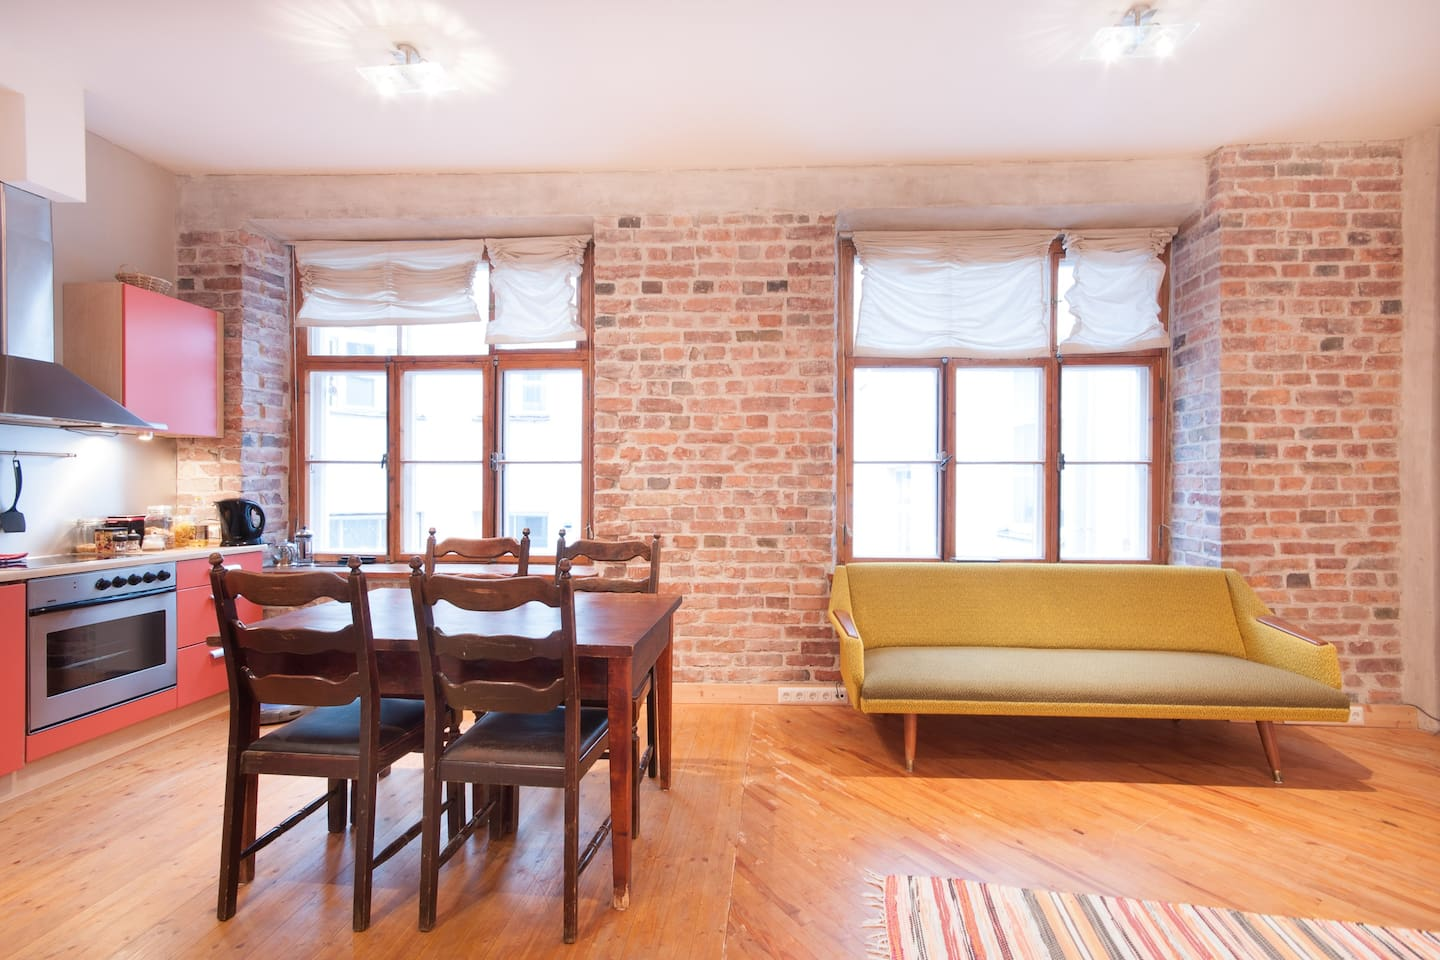 Welcome to the Heart of Tallinn Old Town. Windows open to courtyard. Vintage sofa, table and chairs. Kitchen is equipped for 6.